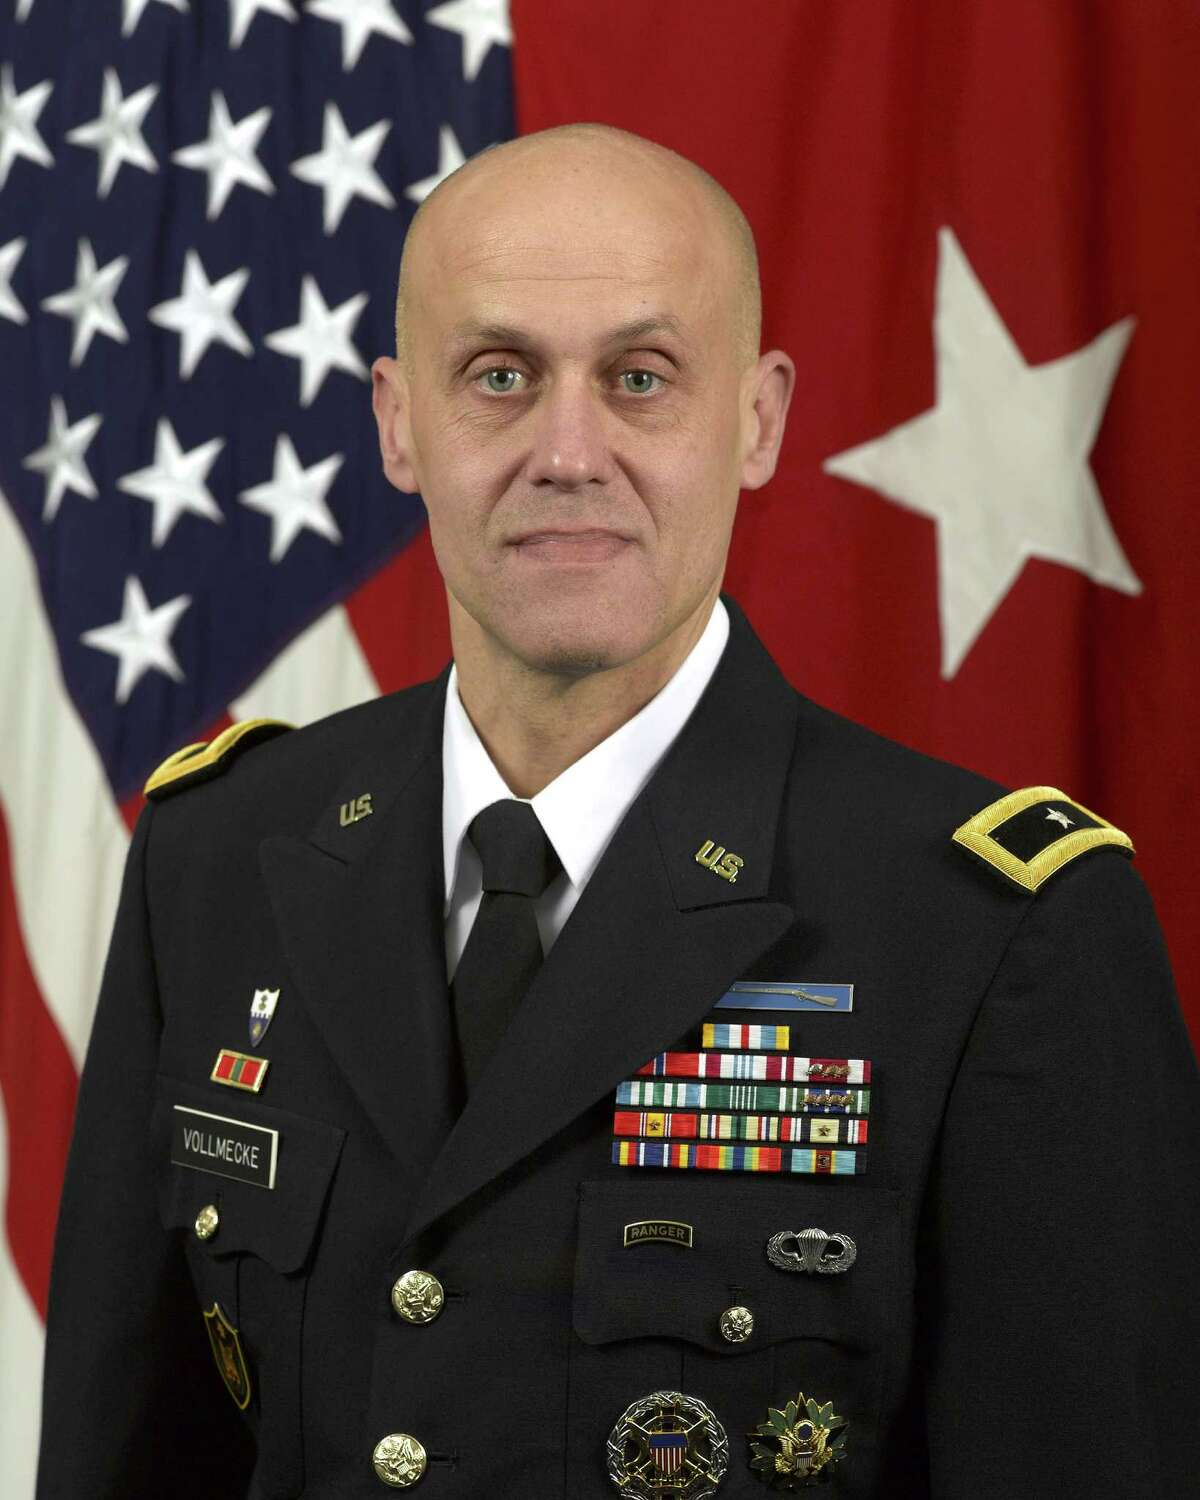 Army Brig. Gen. Kirk Vollmecke is commanding general of the Mission and Installation Contracting Command, Fort Sam Houston. Courtesy photo